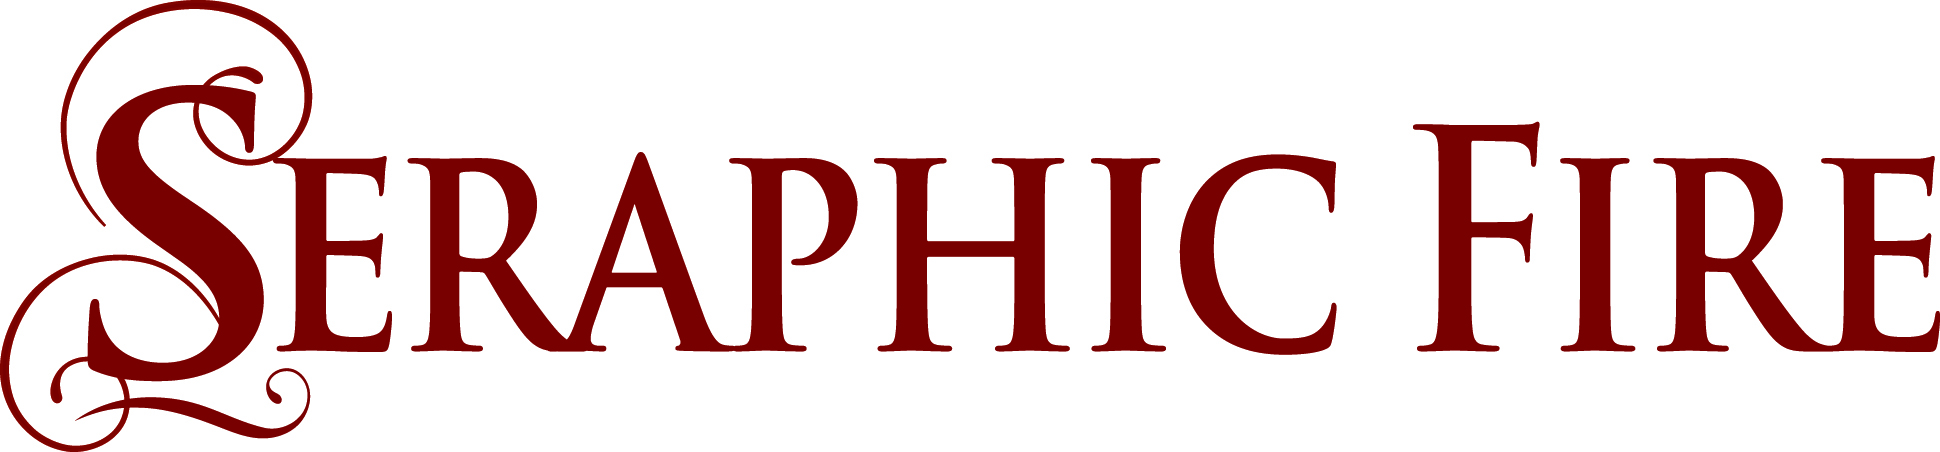 Seraphic Fire - color logo